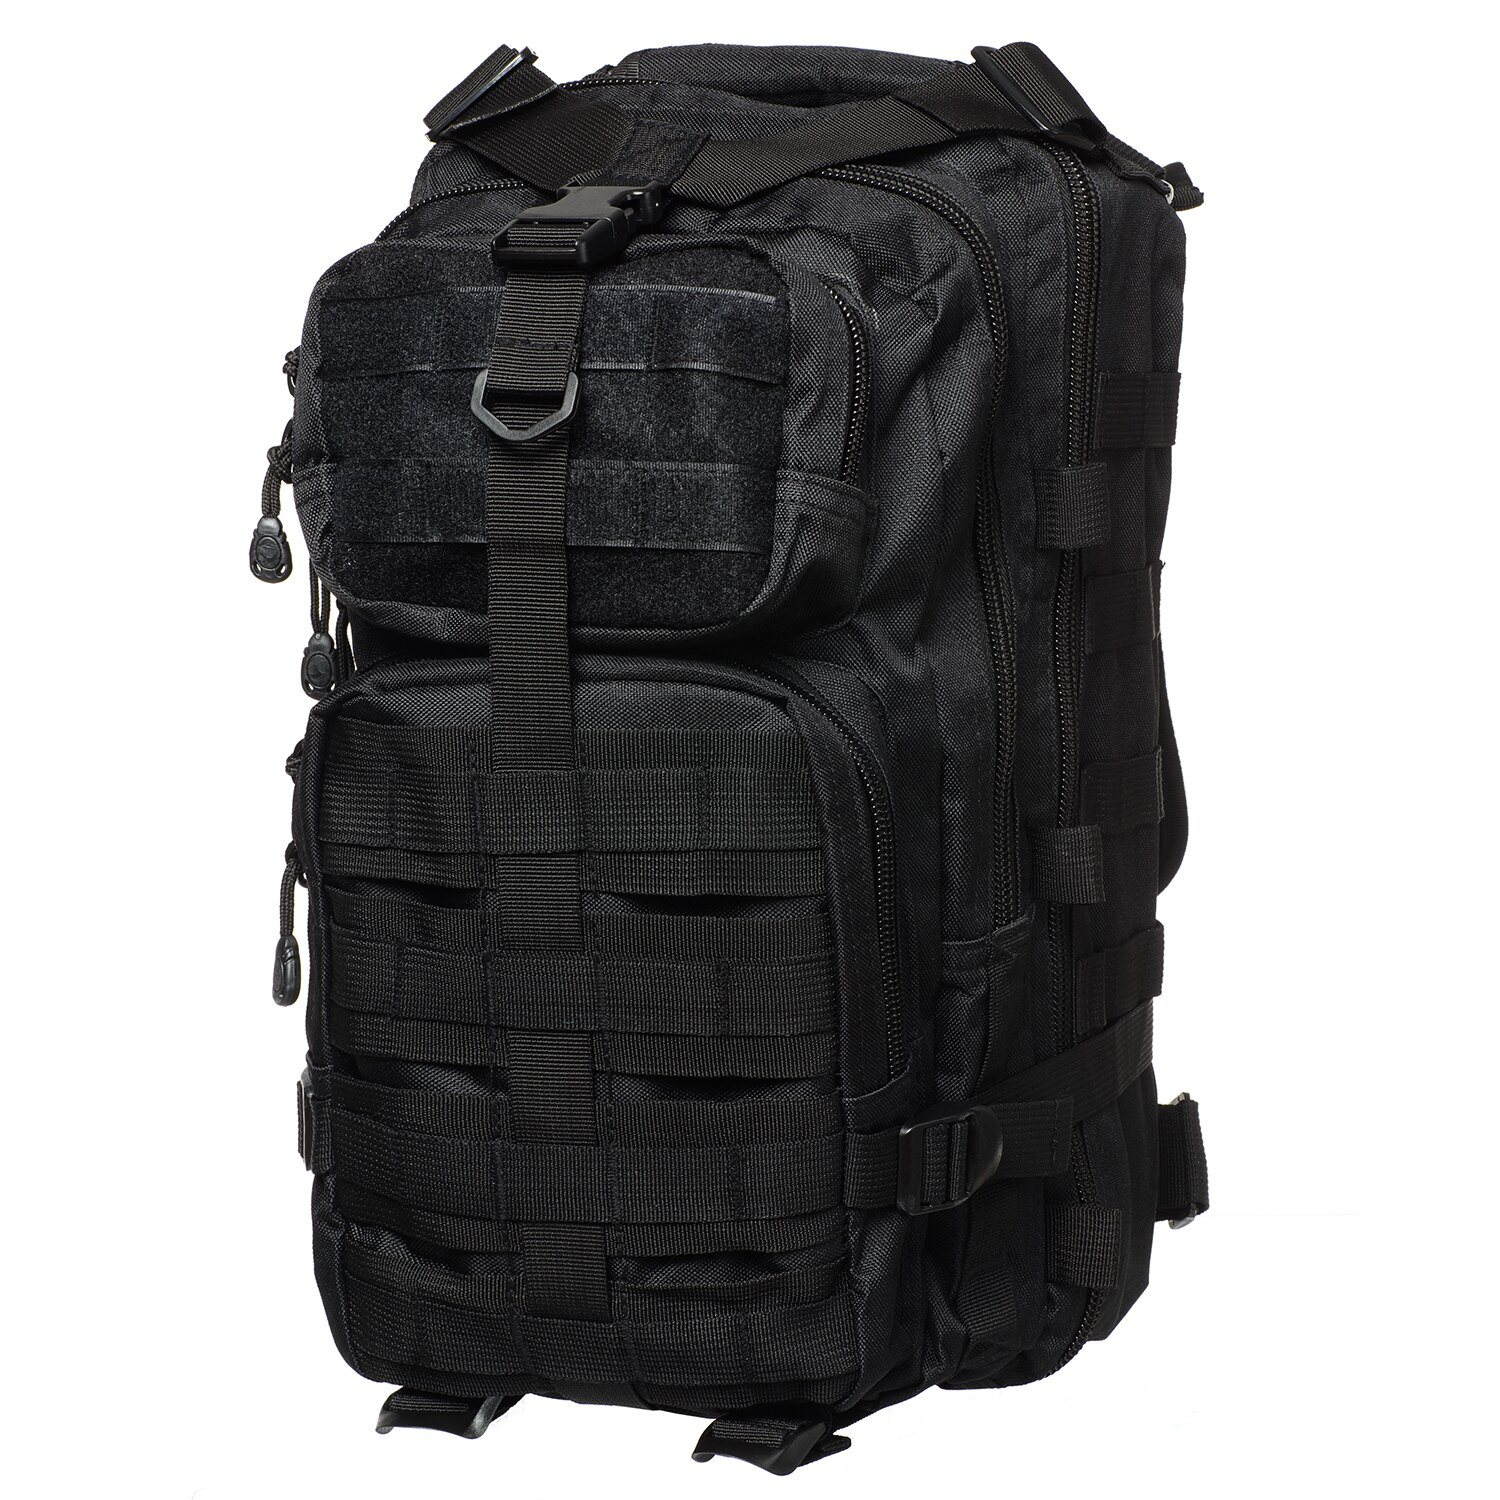 Every Day Carry Military Tactical Large Army 3 Assault Molle Outdoor Backpack For Hiking